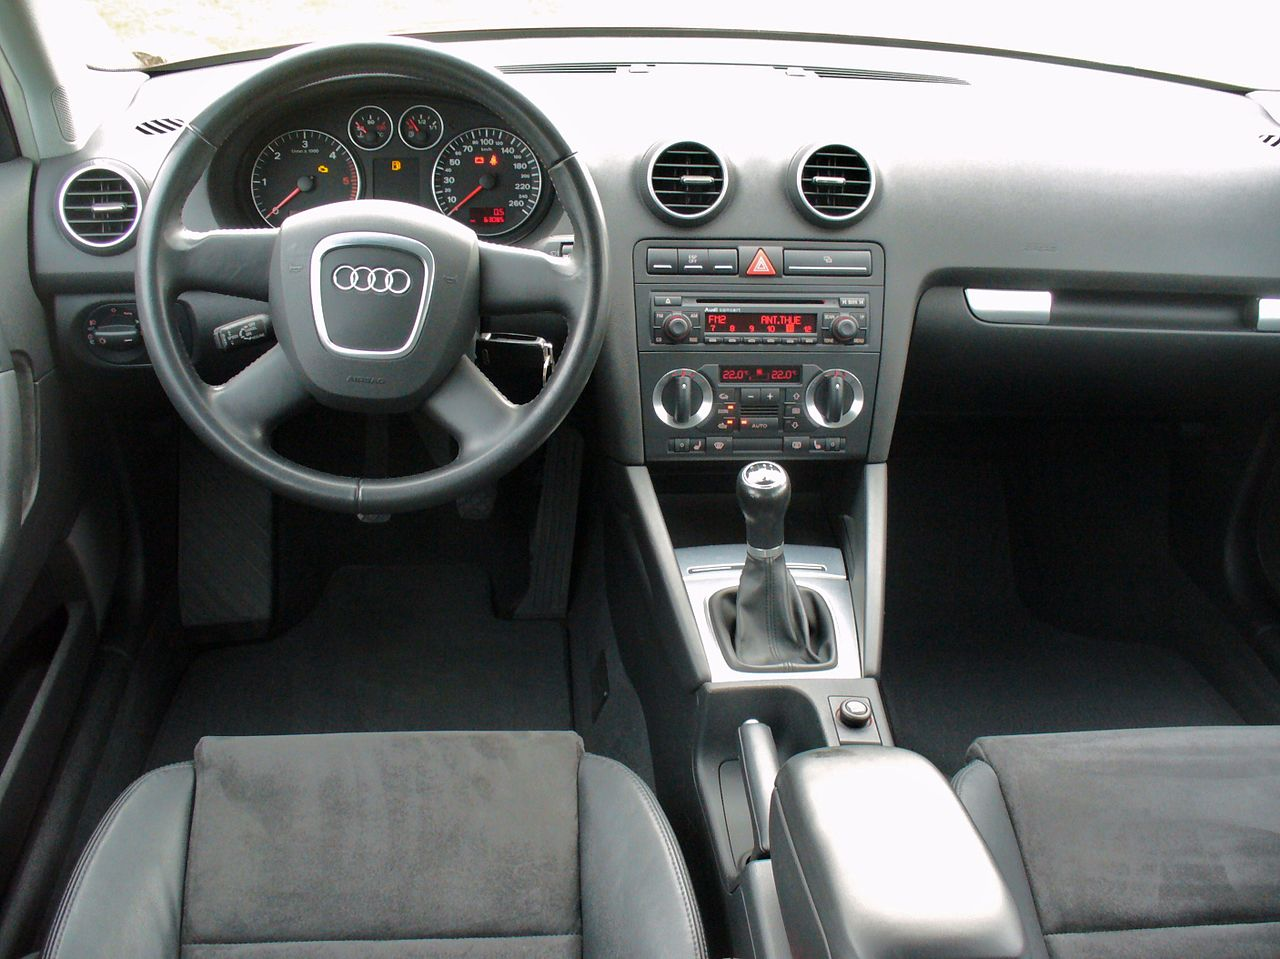 file audi a3 8pa ambiente 2 0 tdi granatrot interieur jpg wikimedia commons. Black Bedroom Furniture Sets. Home Design Ideas